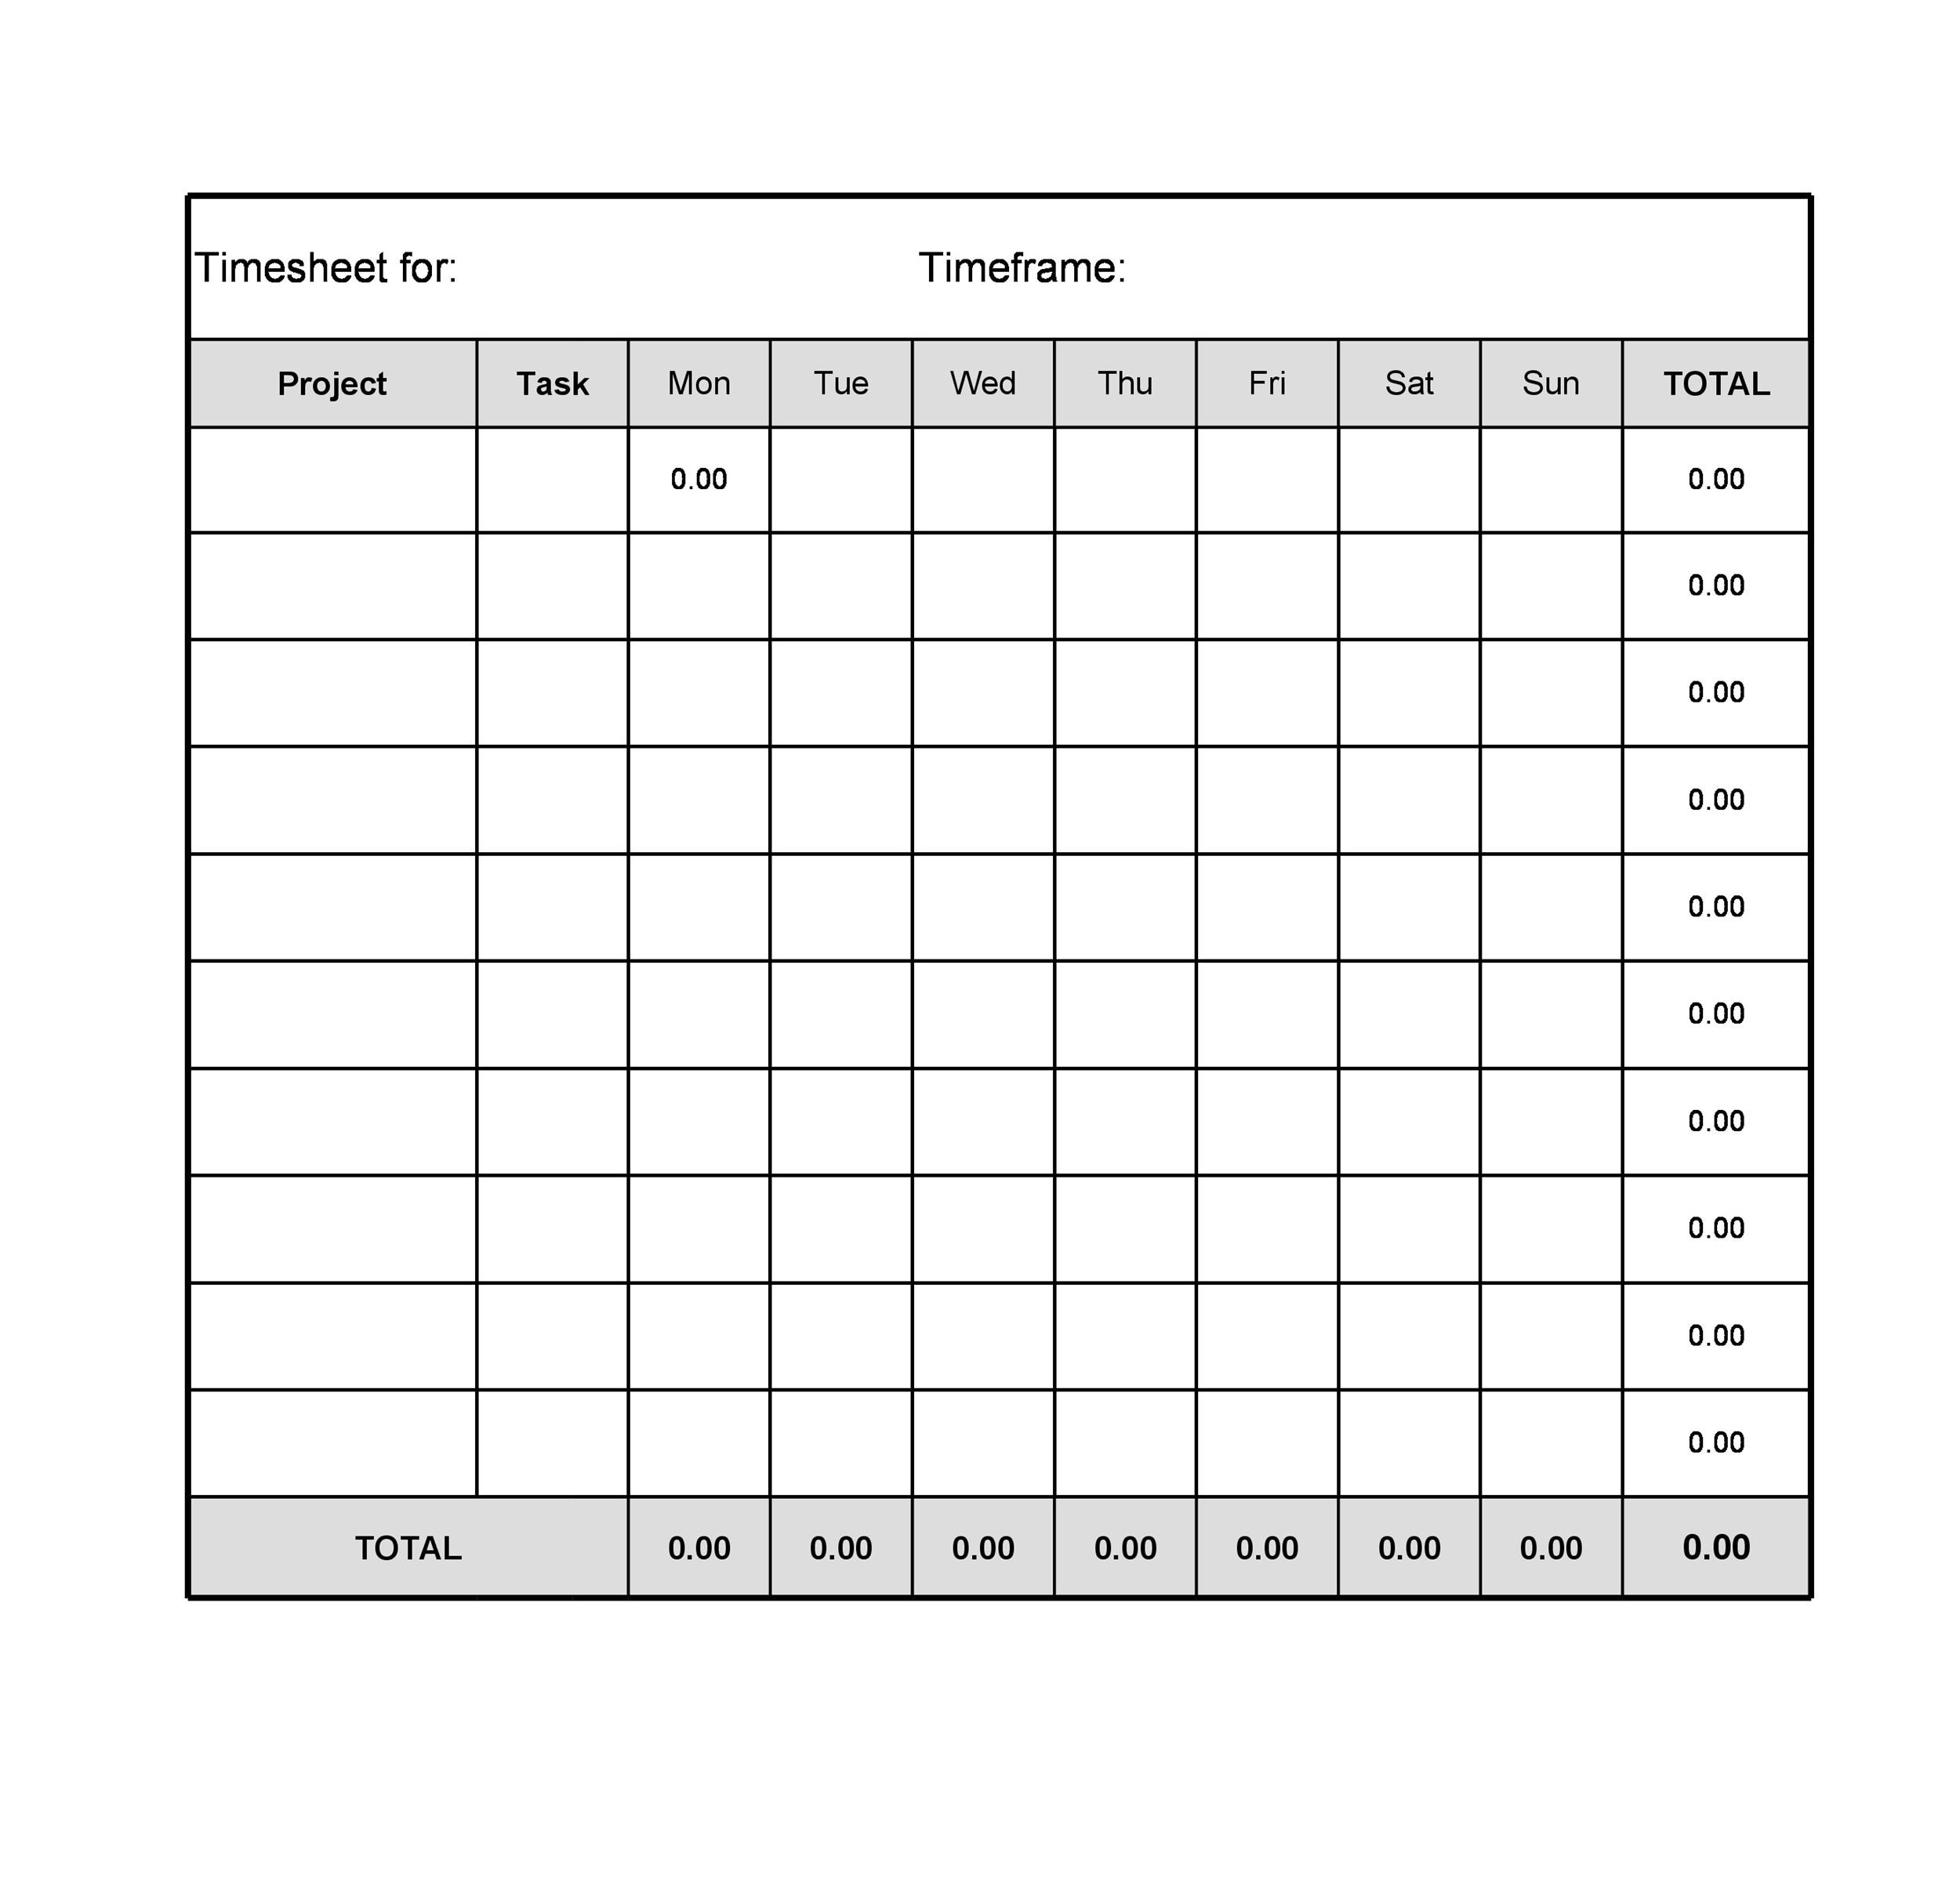 40 Free Timesheet / Time Card Templates - Template Lab - free timesheet forms